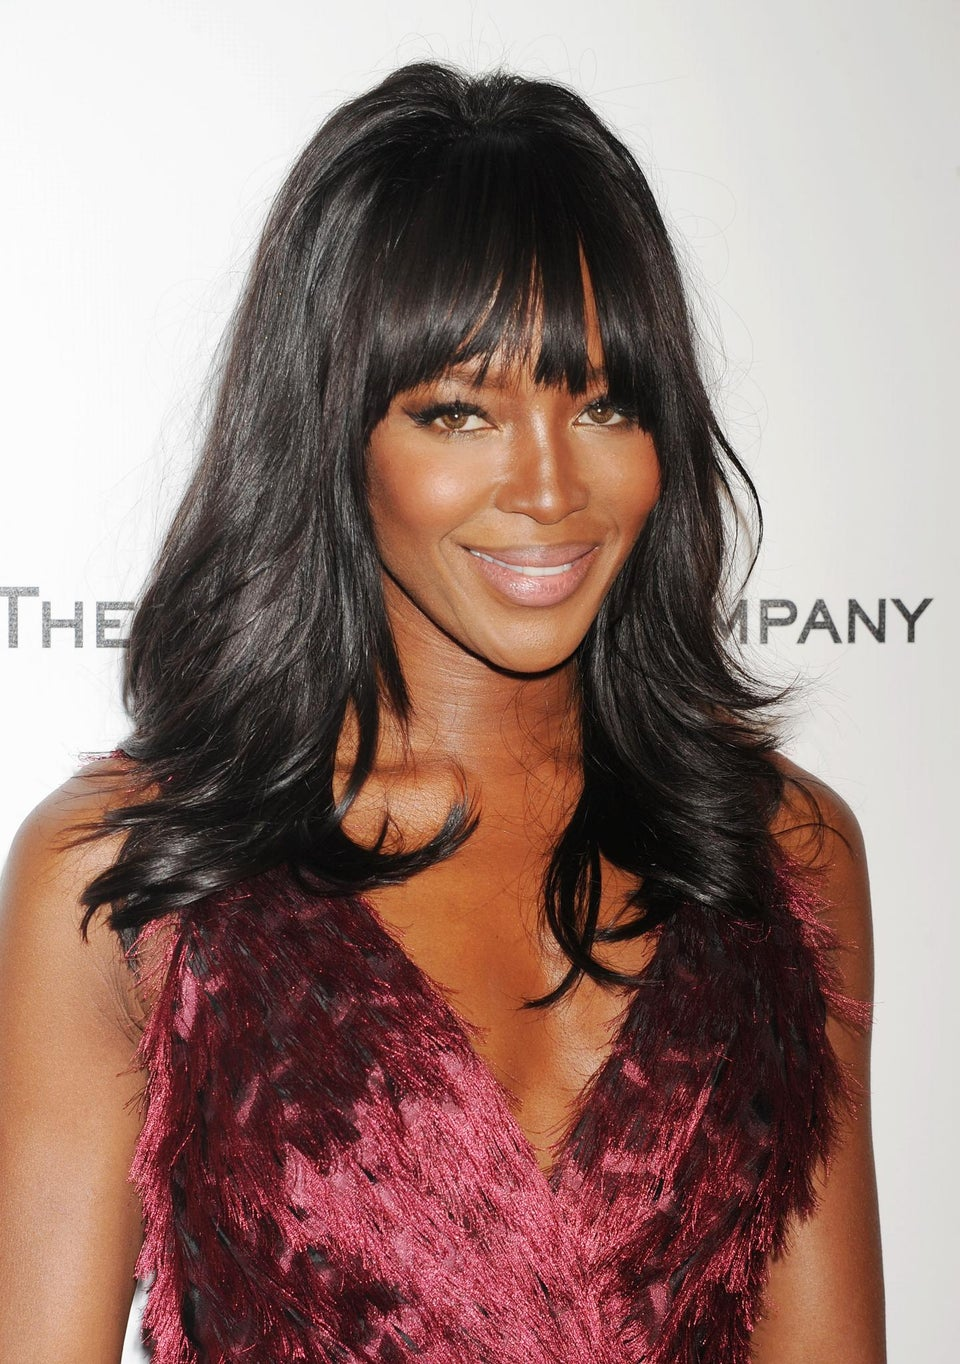 Naomi Campbell Found Guilty of Assault In Italy Paparazzi Attack